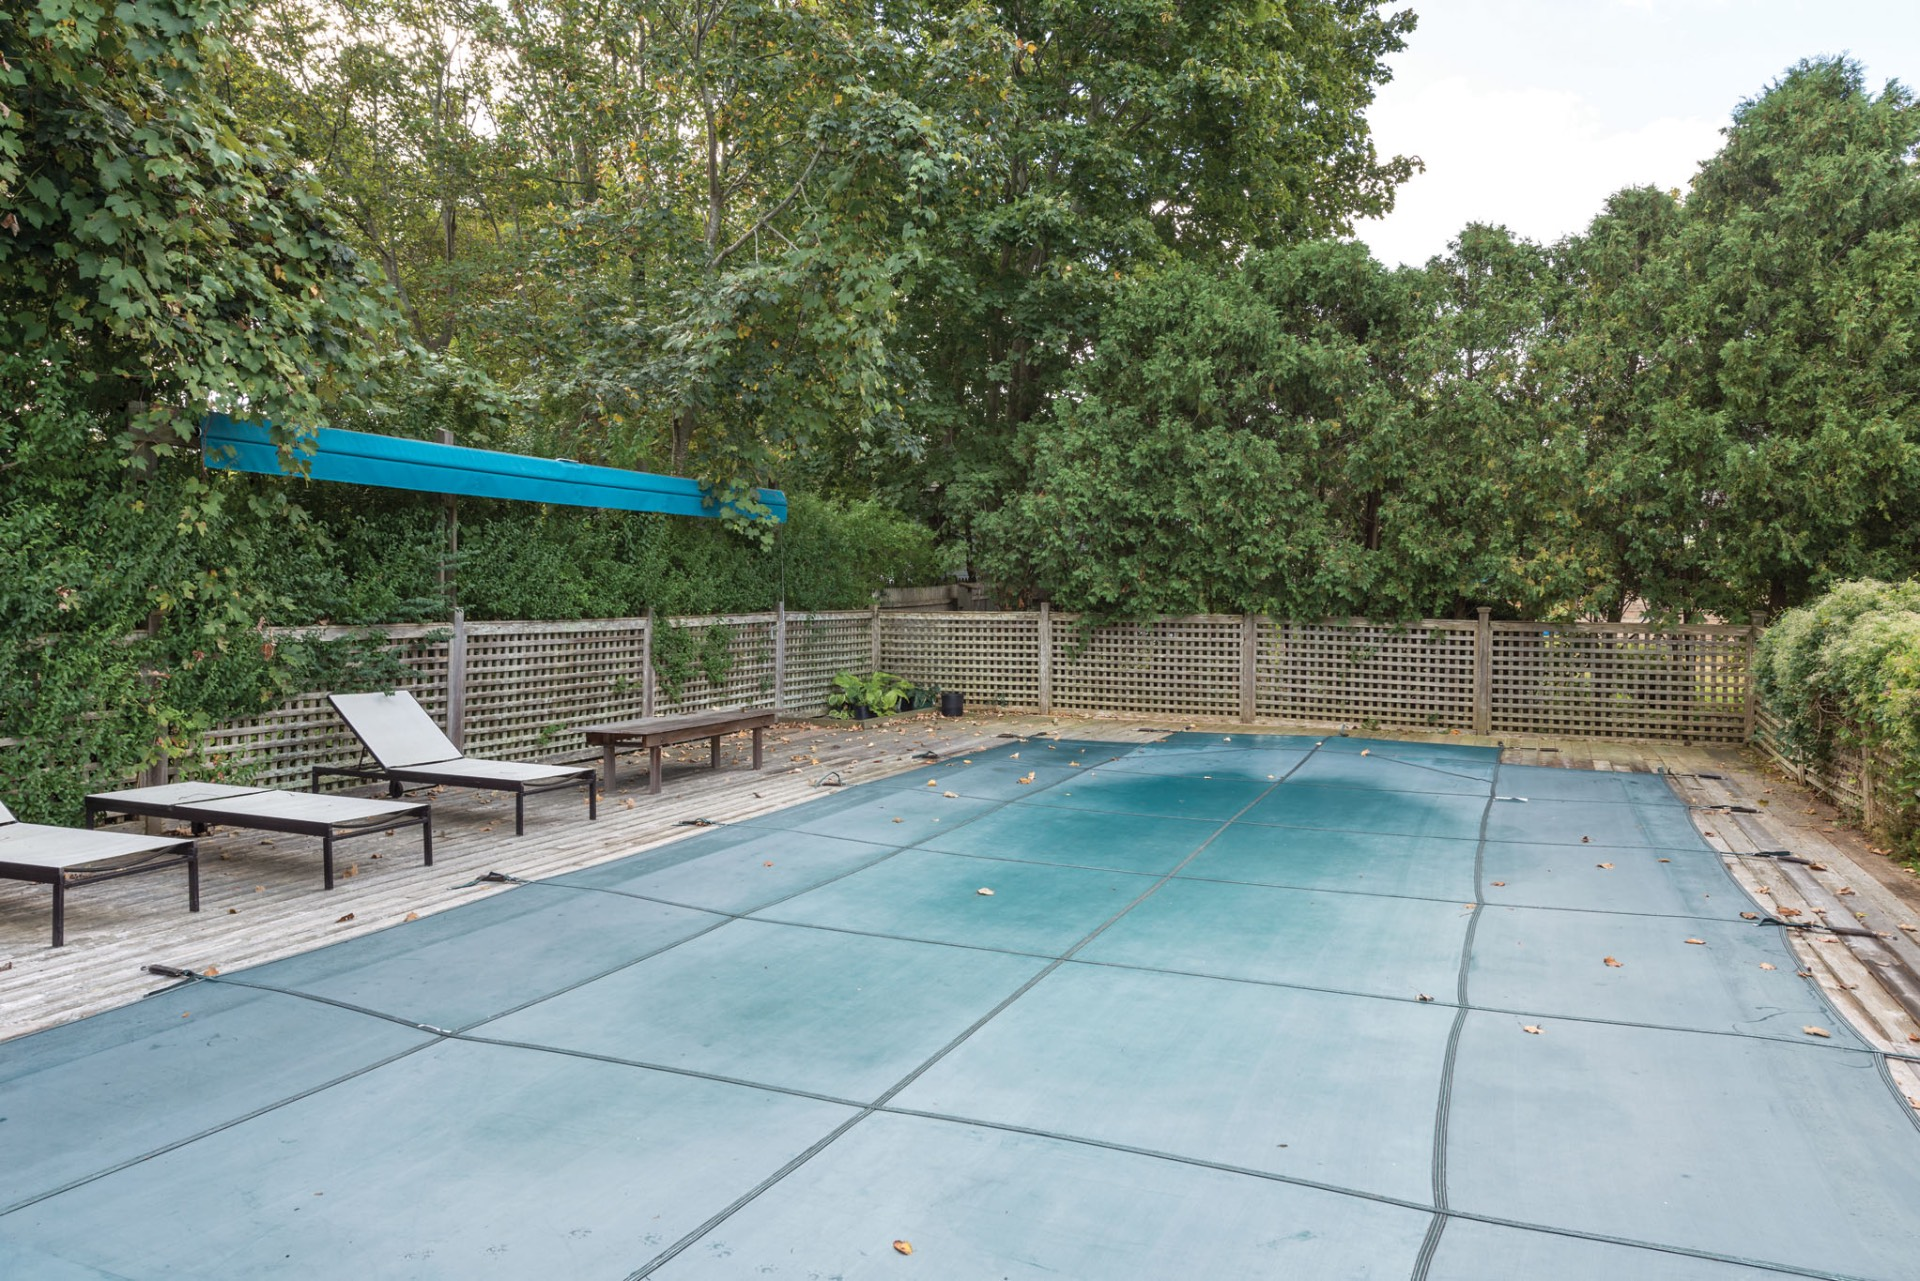 Additional photo for property listing at Classic Village Traditional With Pool  Sag Harbor, Nueva York